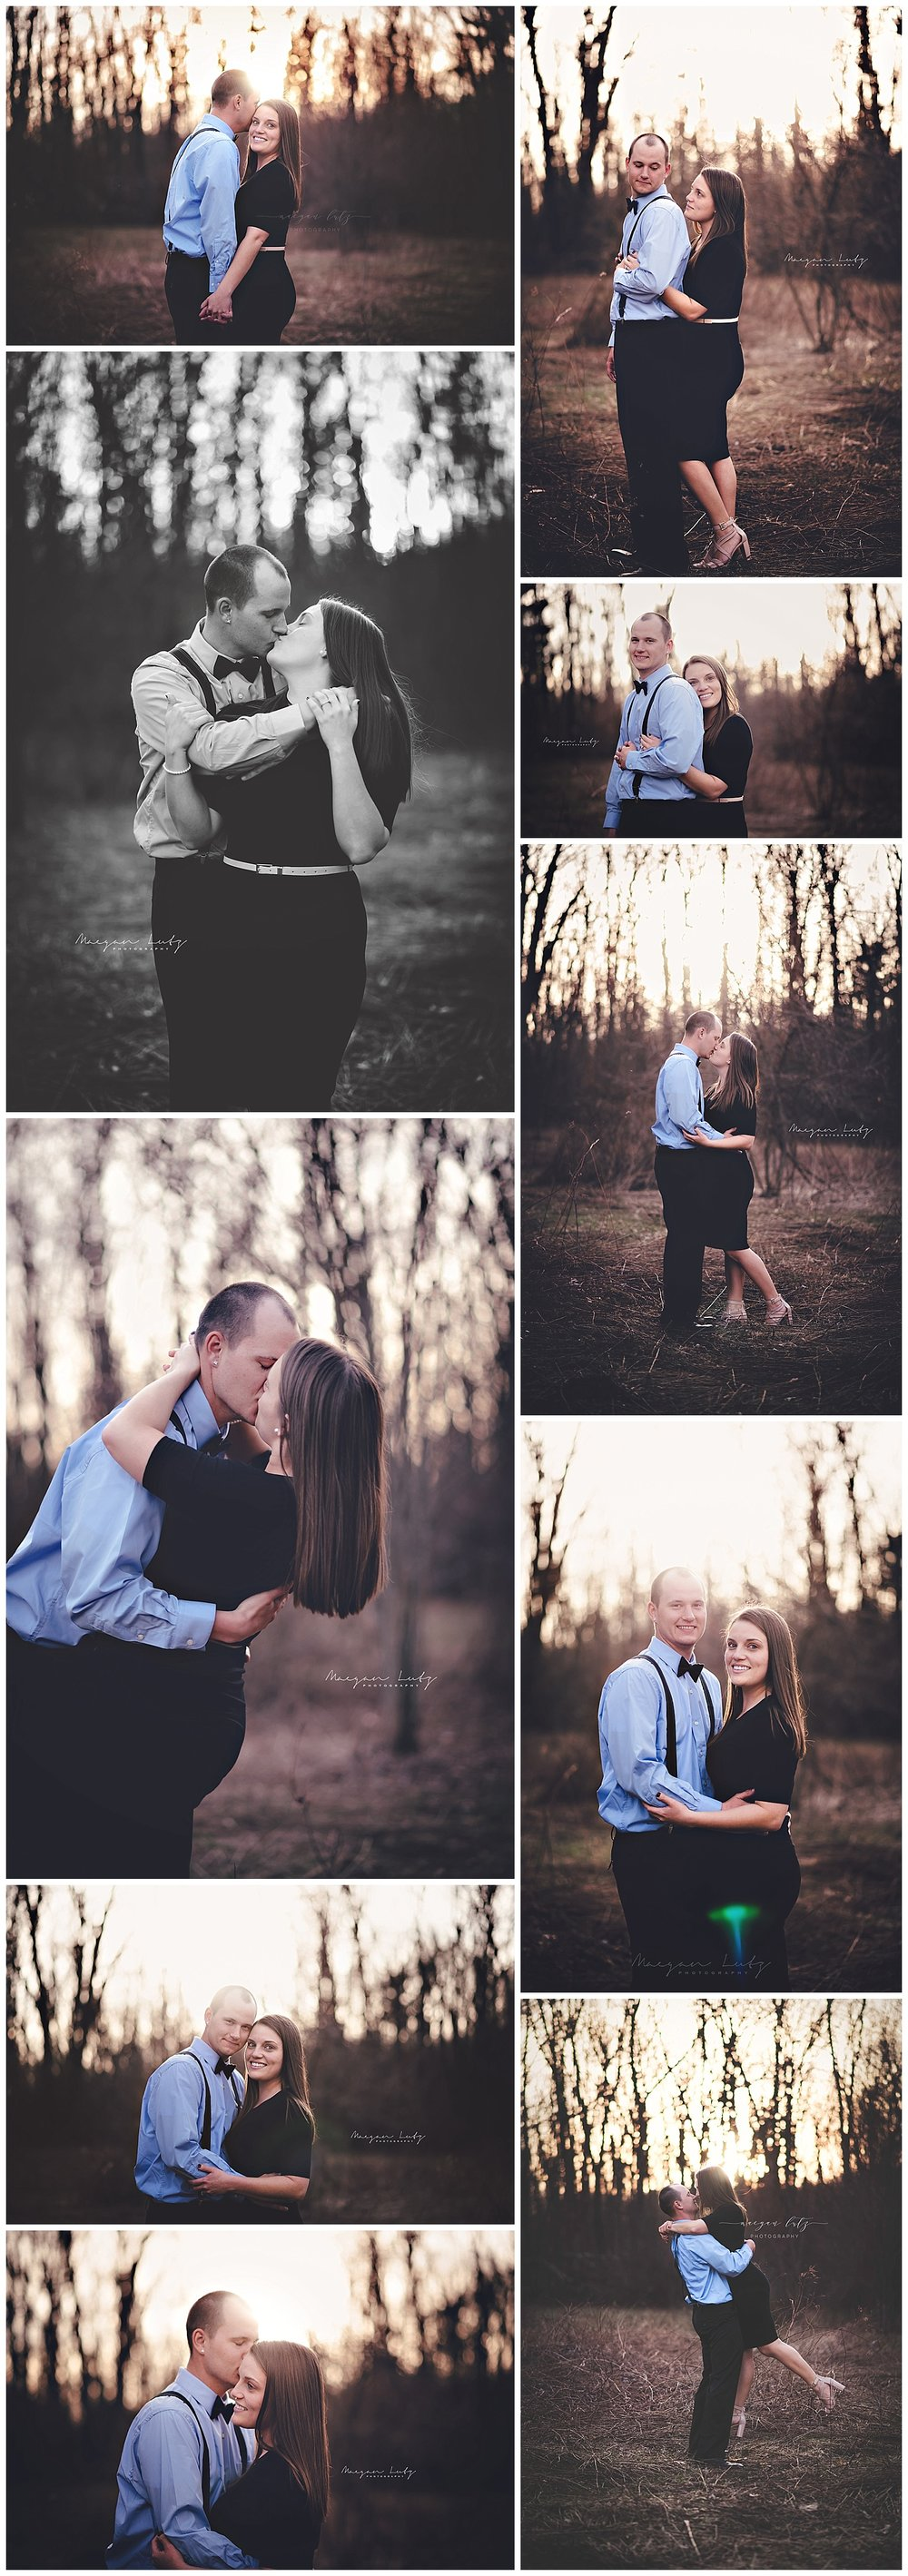 Engagement_Photographer_In_NEPA_Outdoor_Couple_Session_0016.jpg